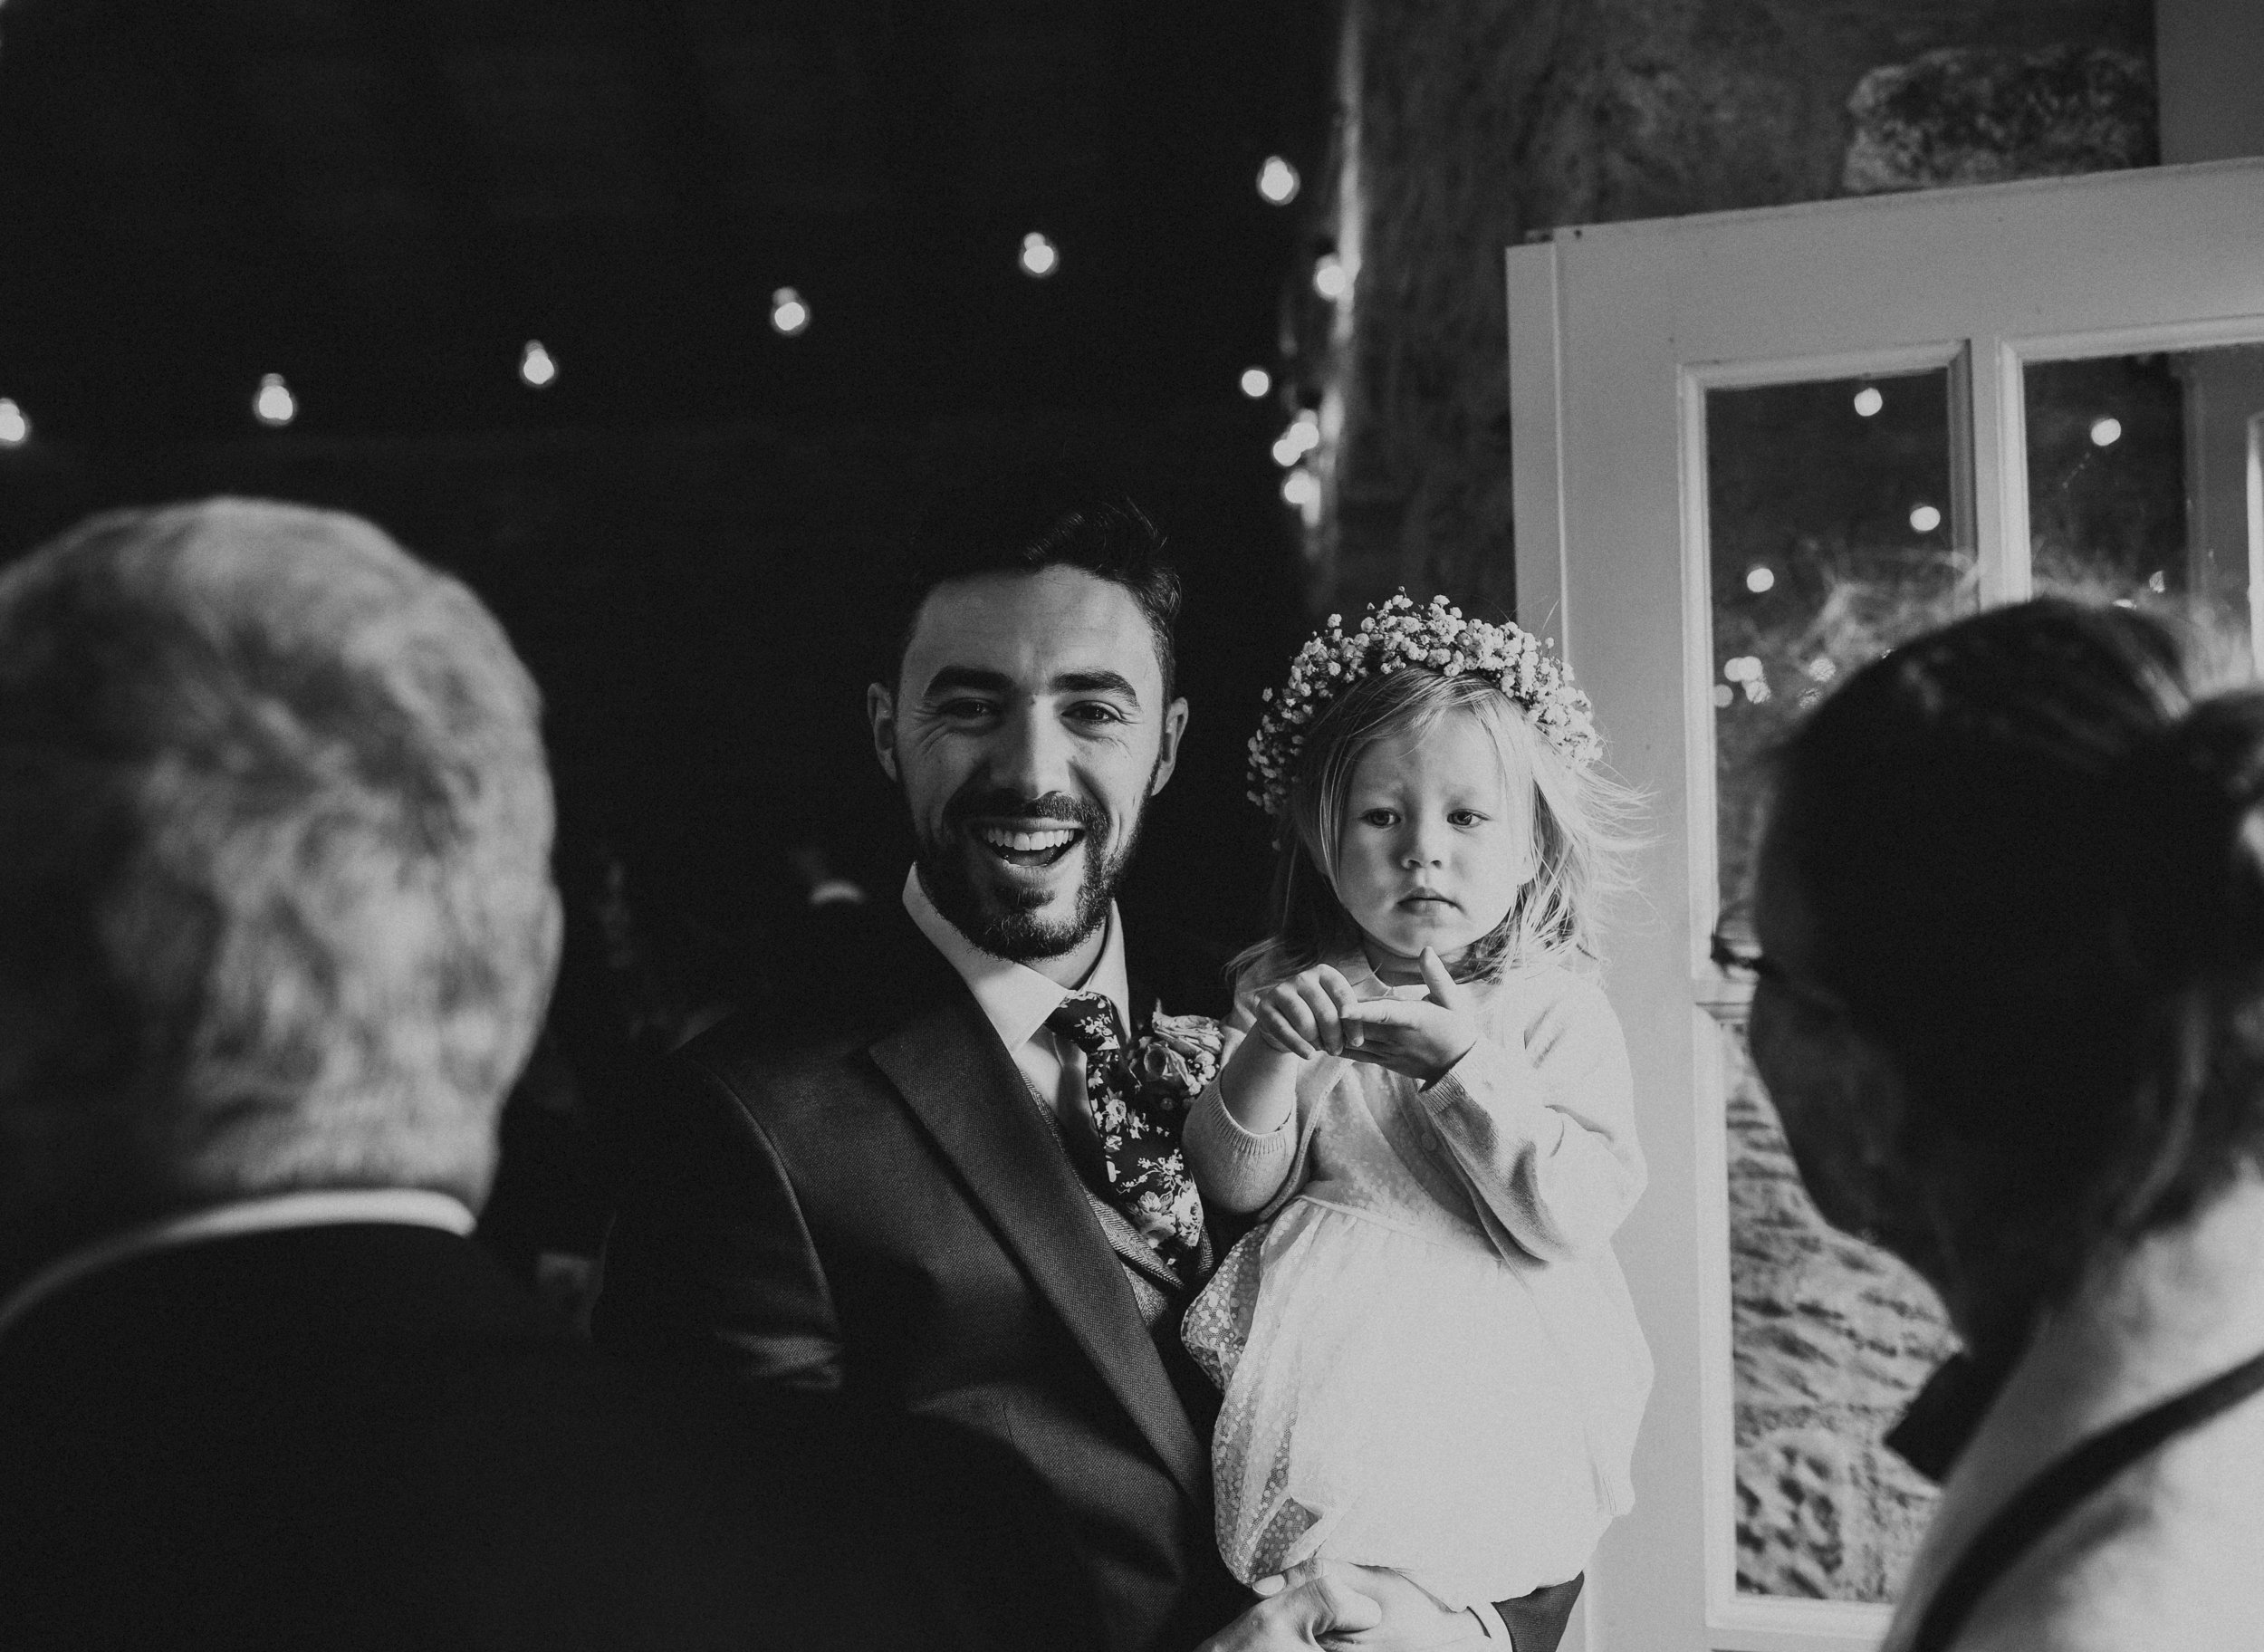 PJ_PHILLIPS_PHOTOGRAPHY_EDINBURGH_WEDDERBURN_BARNS_WEDDING_EDINBURGH_WEDDING_PHOTOGRAPHER_87.jpg